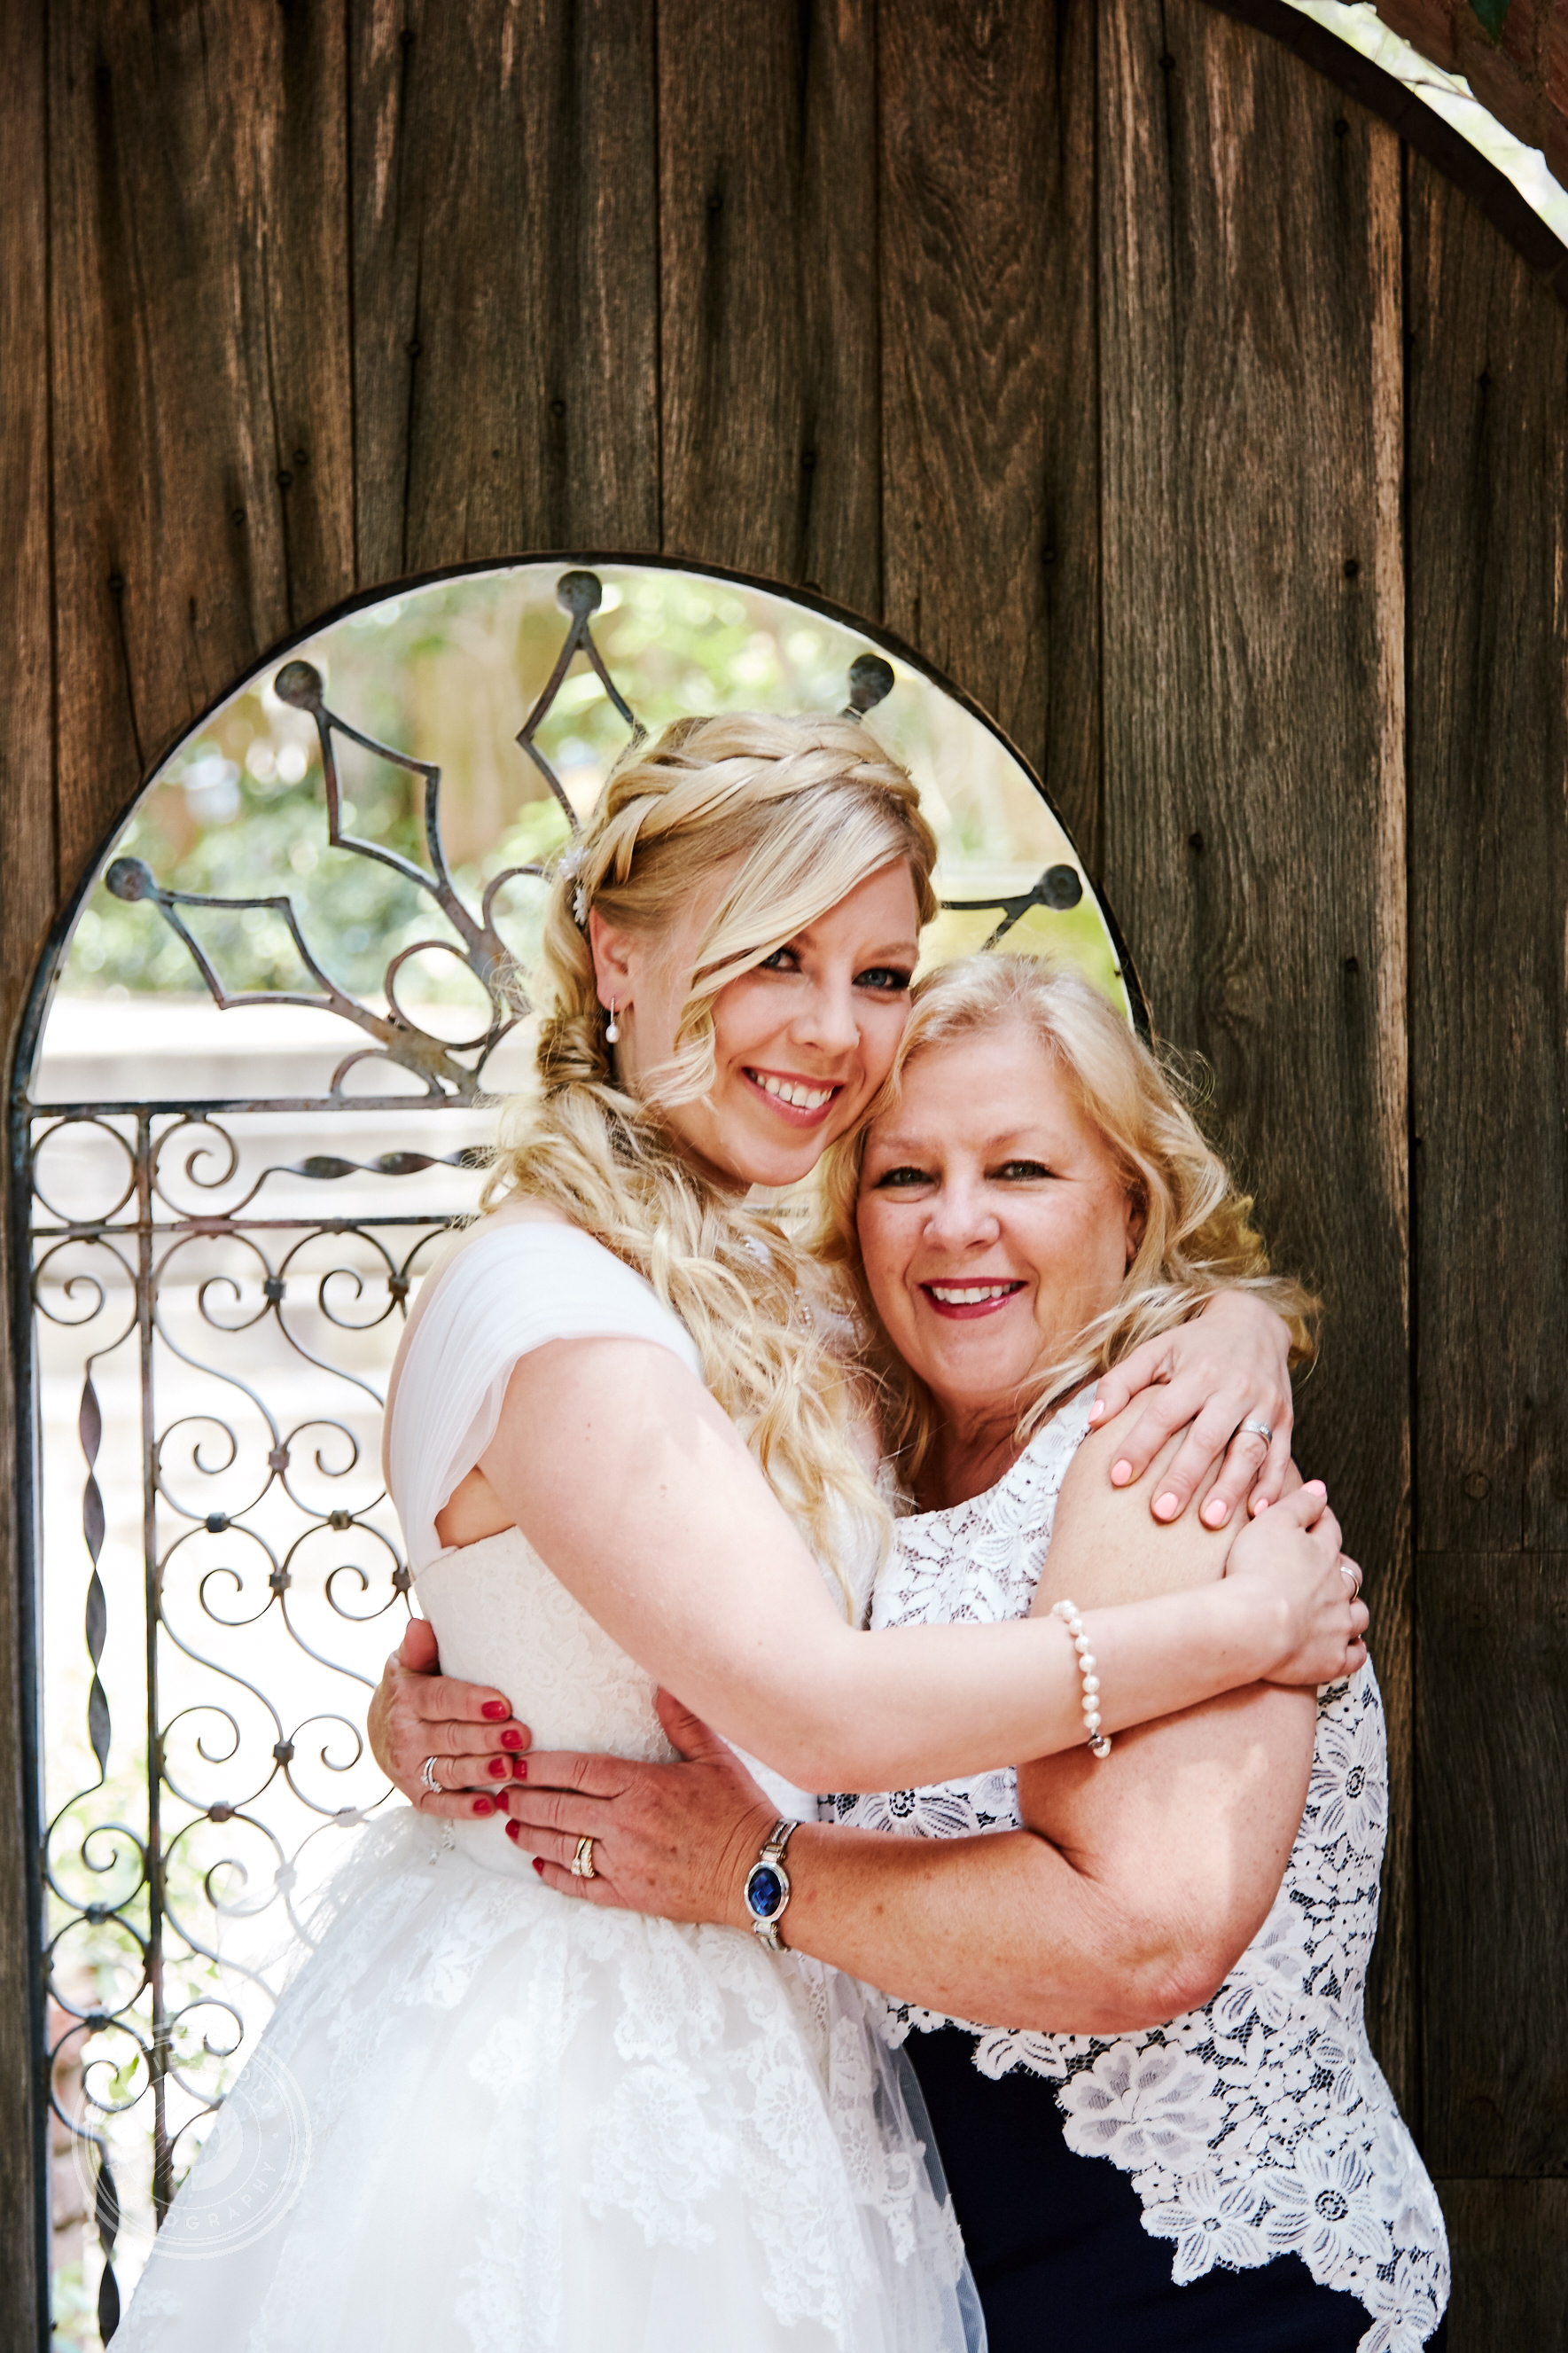 Daniel Doty Photography Erin Colin SoCal Wedding Photographer Strathearn 050.jpg